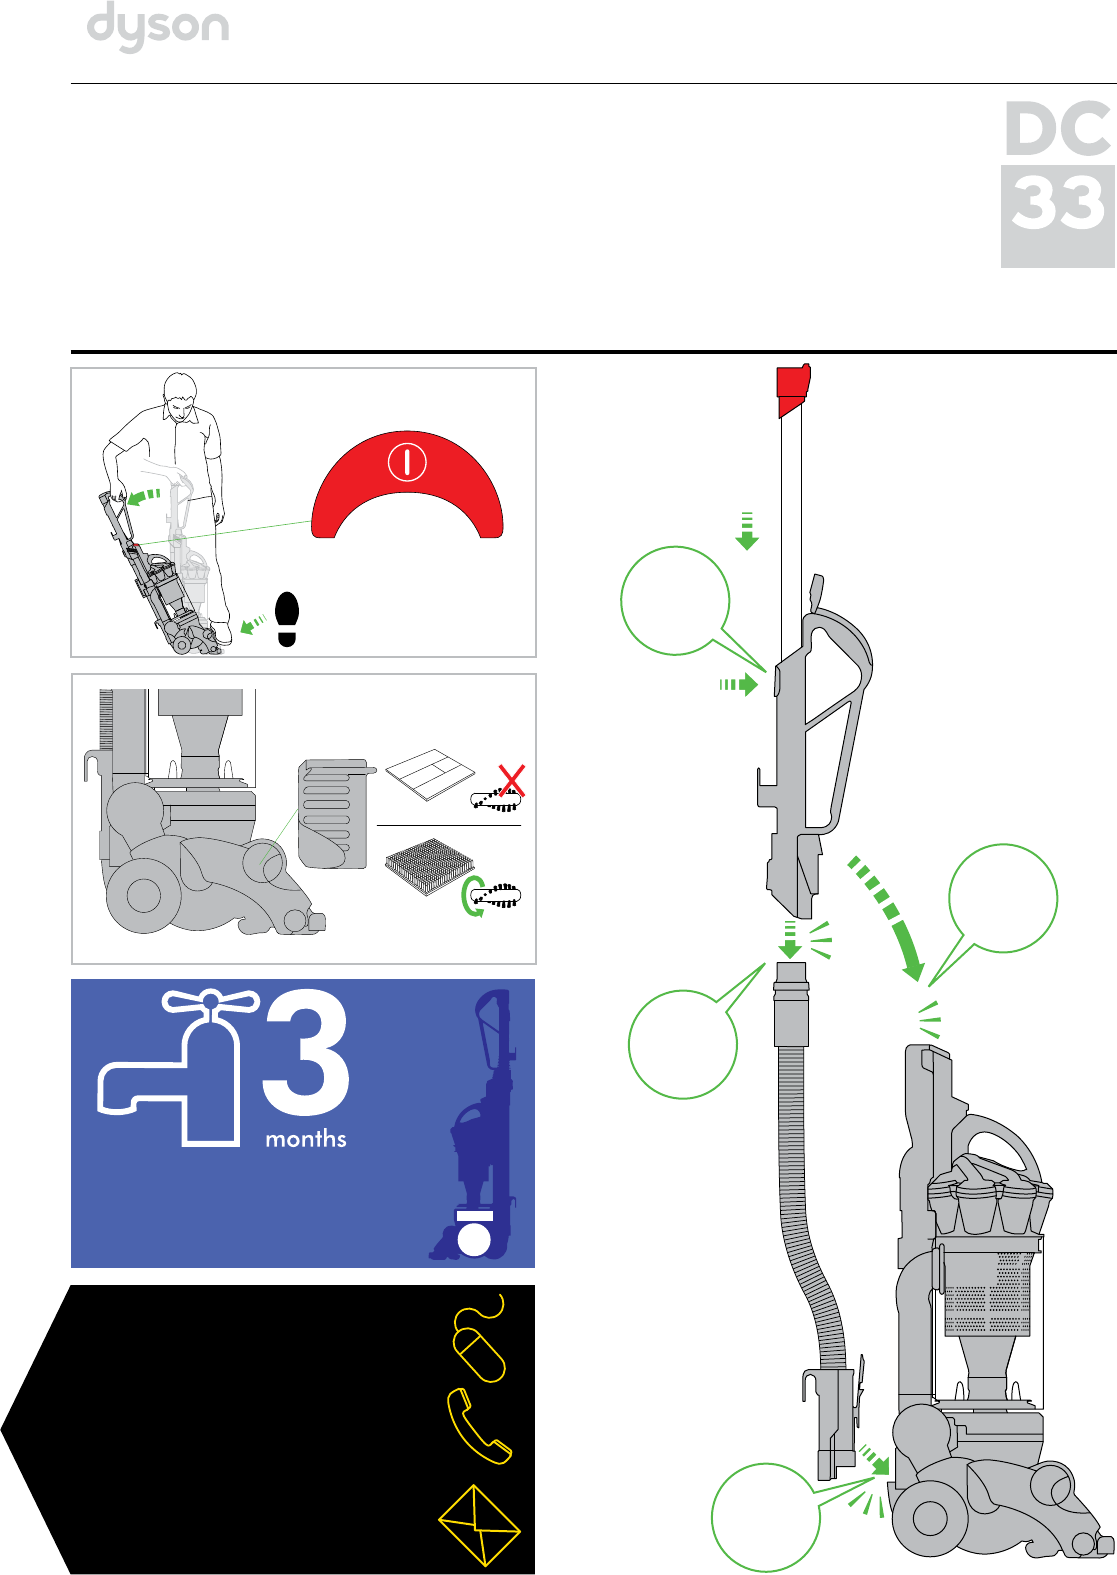 dyson vacuum cleaner dc33 user guide manualsonline com rh homeappliance manualsonline com Dyson DC33 Won't Turn On dyson dc33 user manual